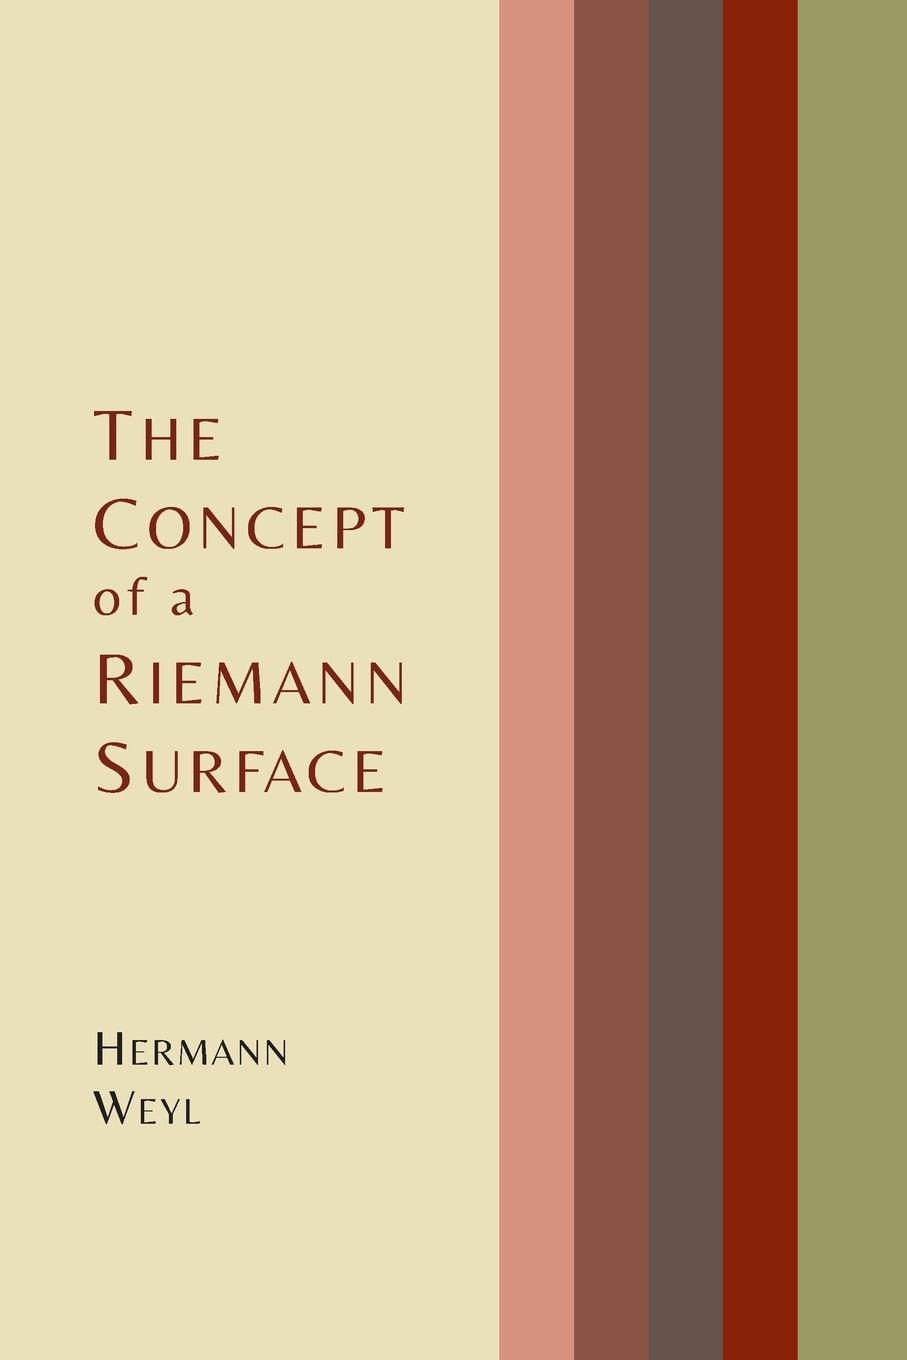 Hermann Weyl, Gerald Maclane The Concept of a Riemann Surface s promislow david fundamentals of actuarial mathematics